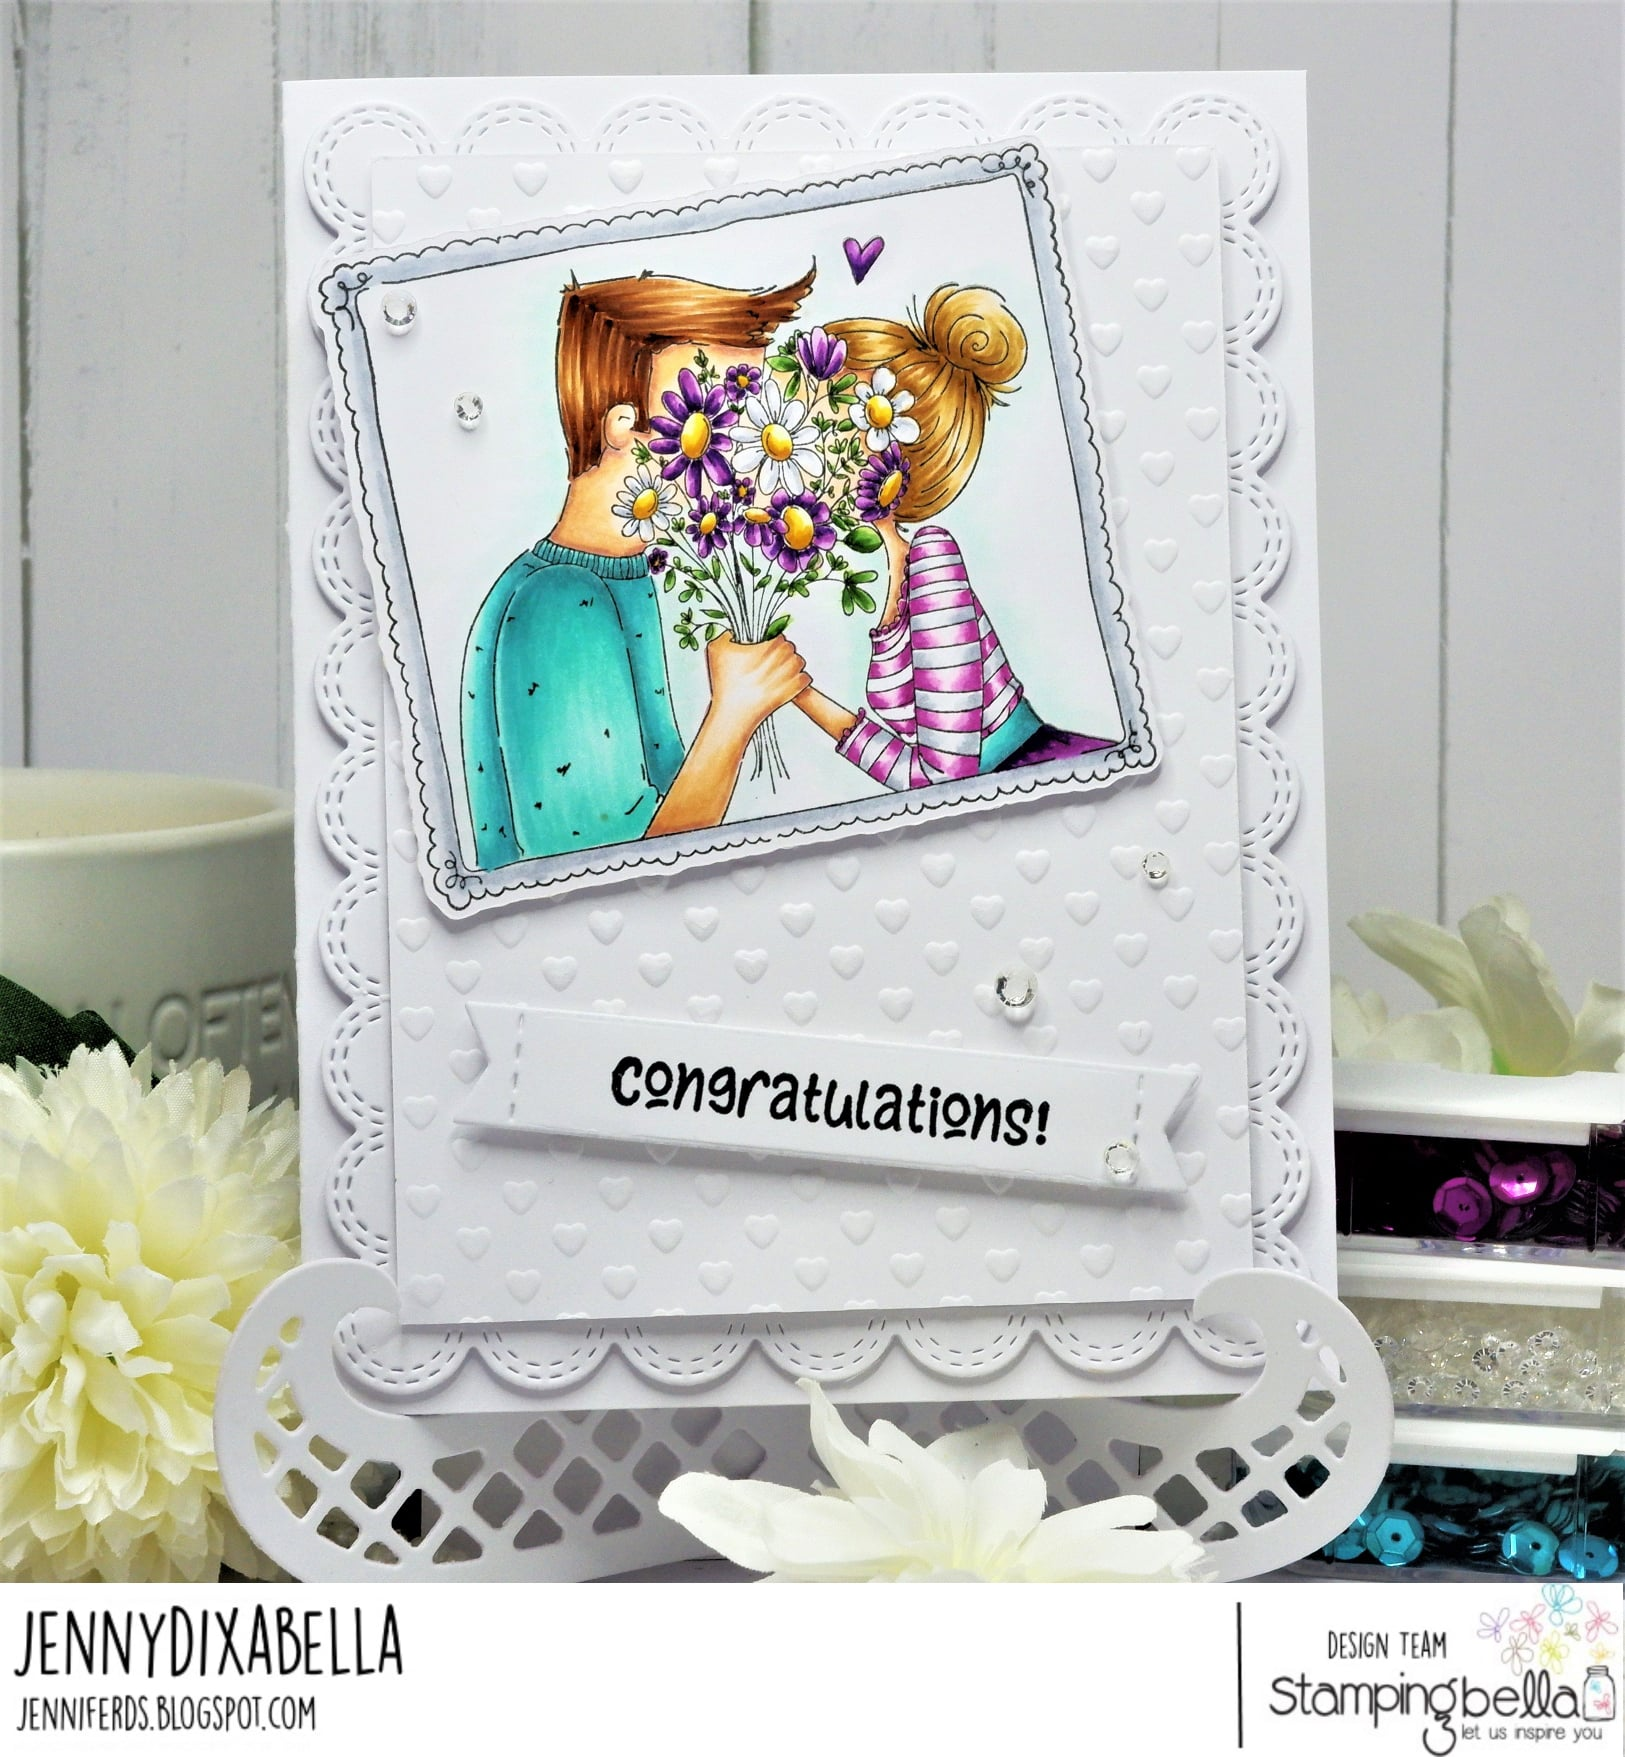 www.stampingbella.com: rubber stamp used:  CLOSEUPS IN LOVE, sentiment from CELEBRATE and CONGRATULATE rubber stamp set and card by Jenny Dix